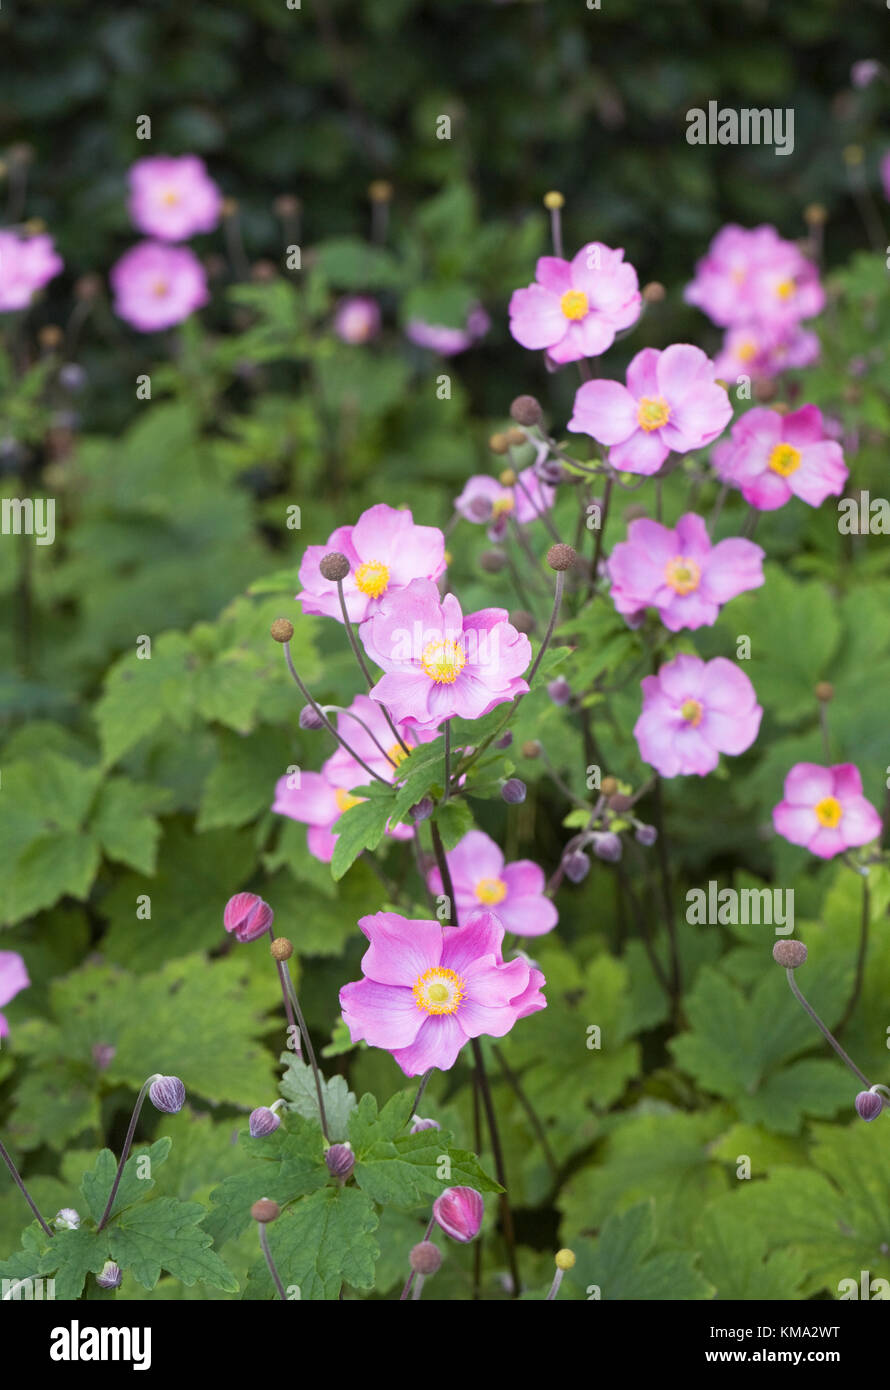 Anemone hupehensis 'Bowles Pink'. Japanese anemones growing in an herbaceous border. Stock Photo